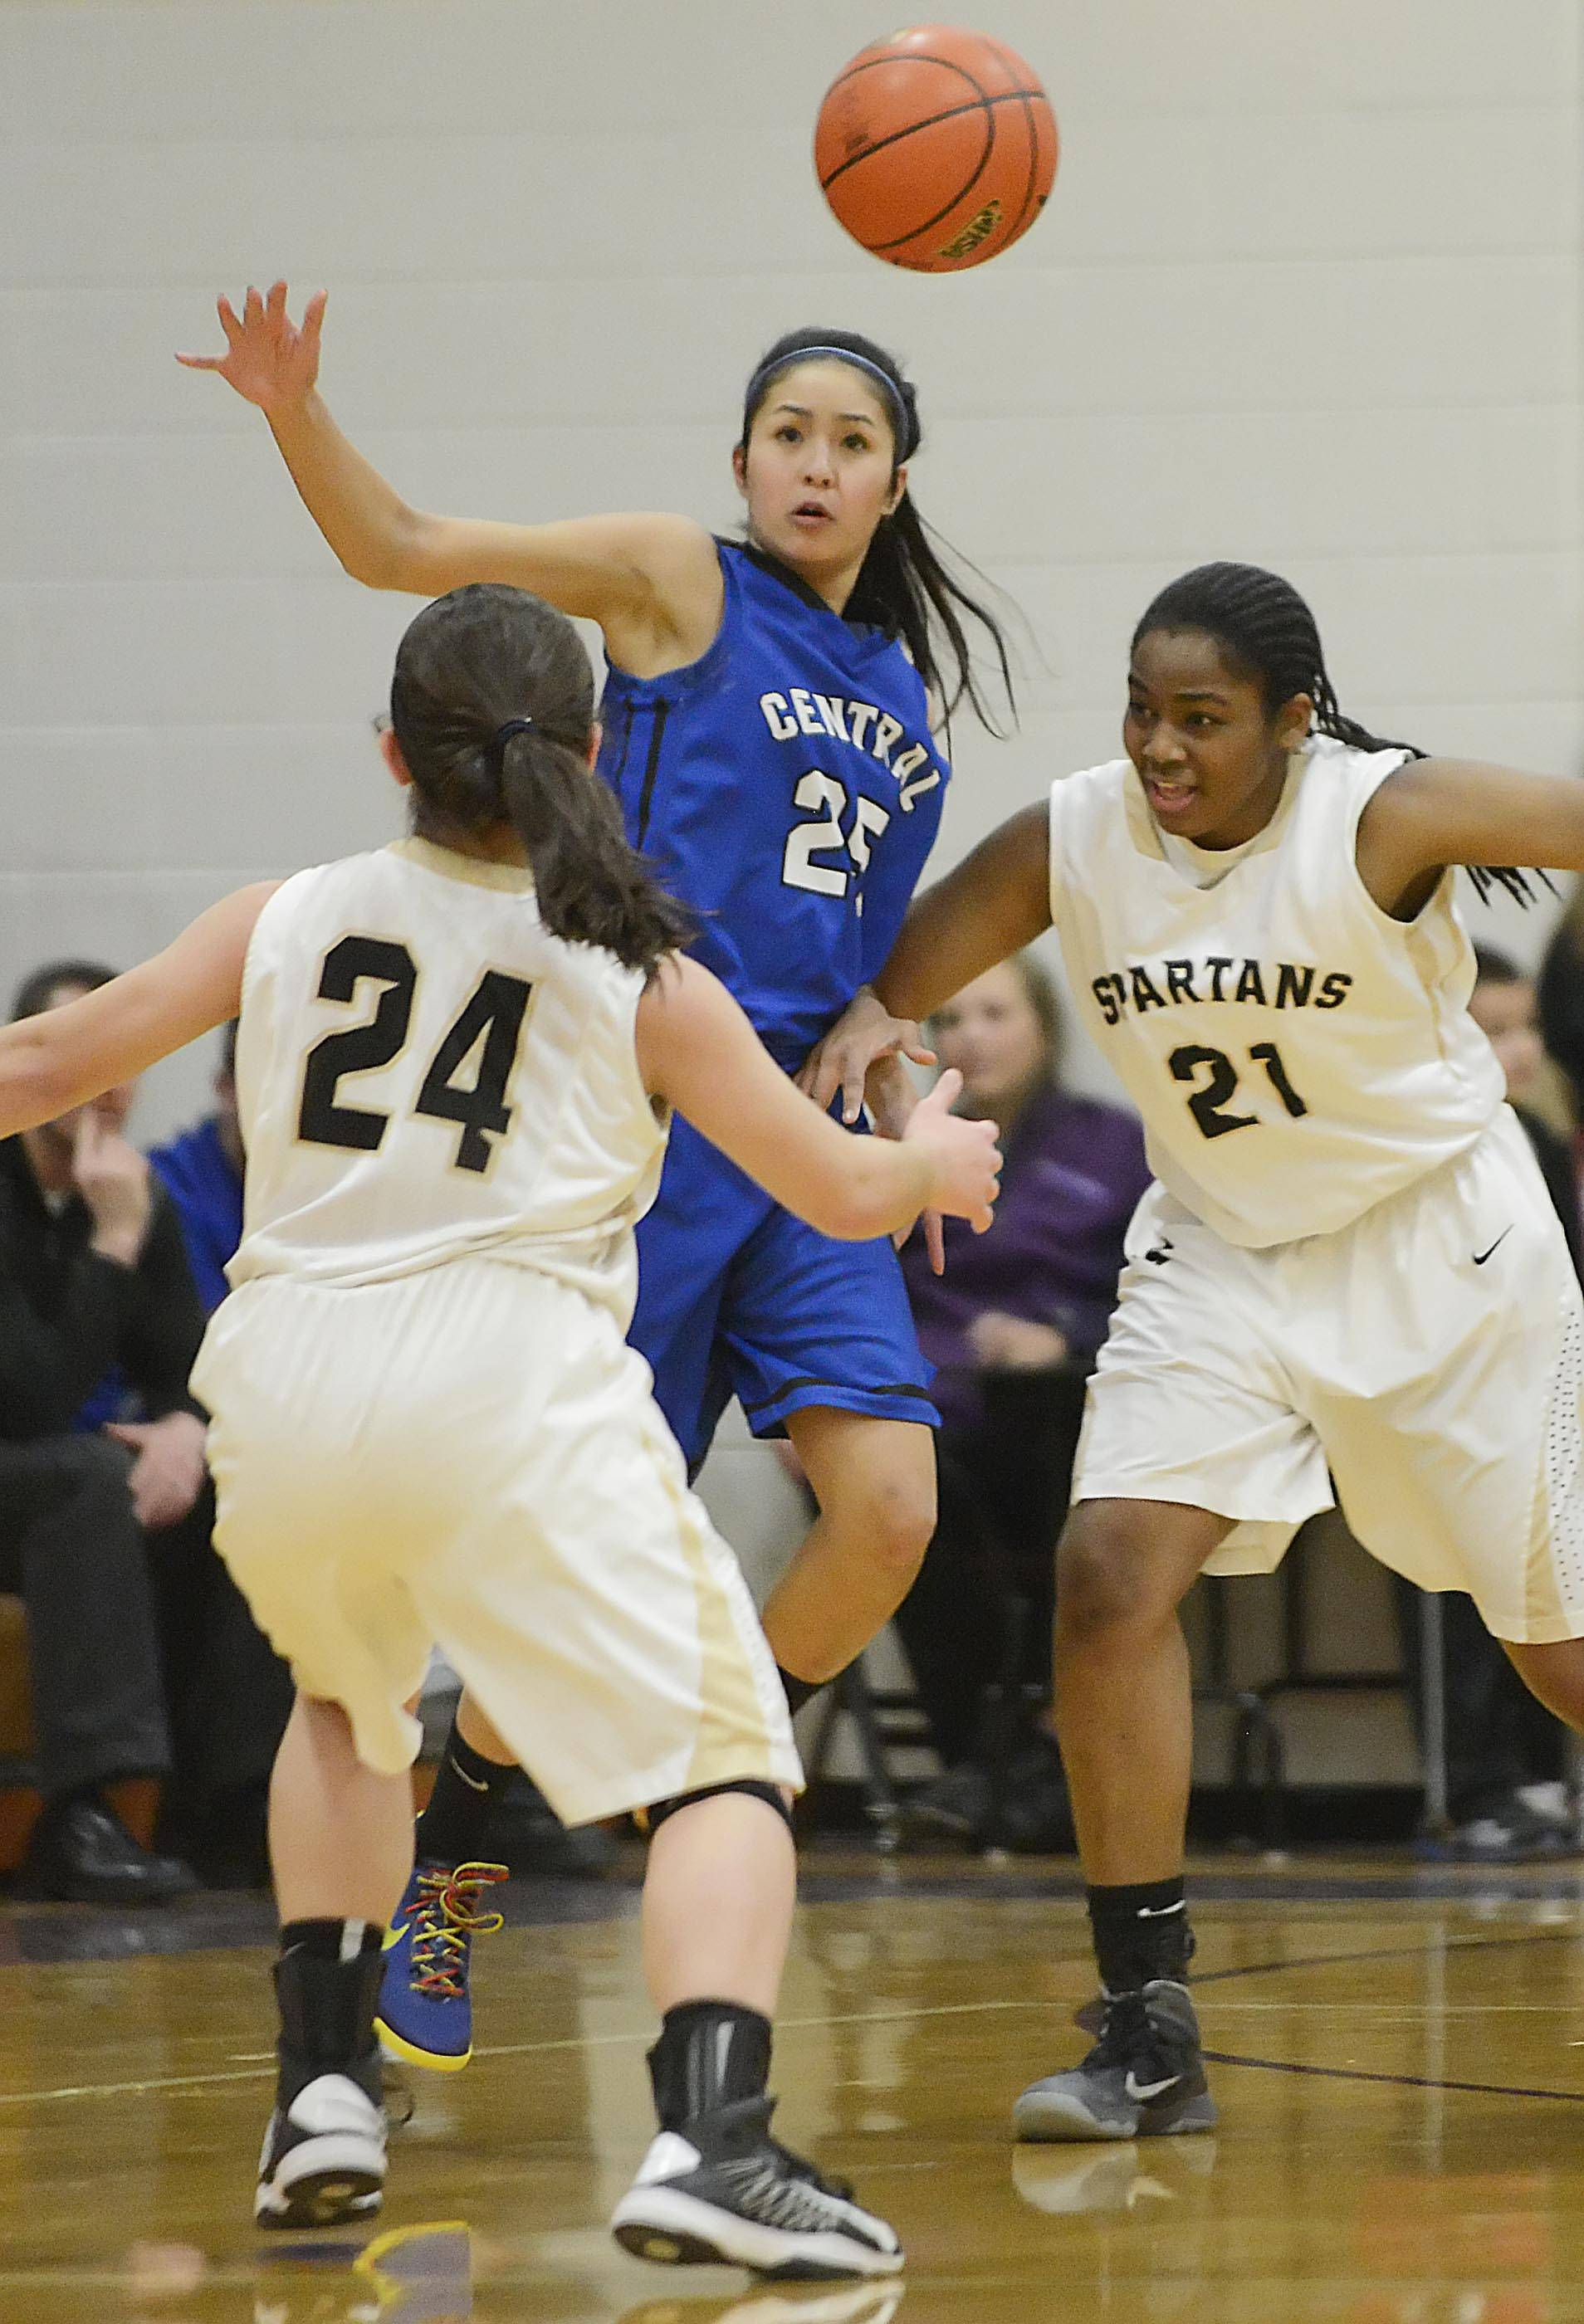 Burlington Central's Samantha Cruz disrupts a pass between Sycamore's Julia Moll and Taiya Hopkins Monday in the Class 3A Belvidere sectional.